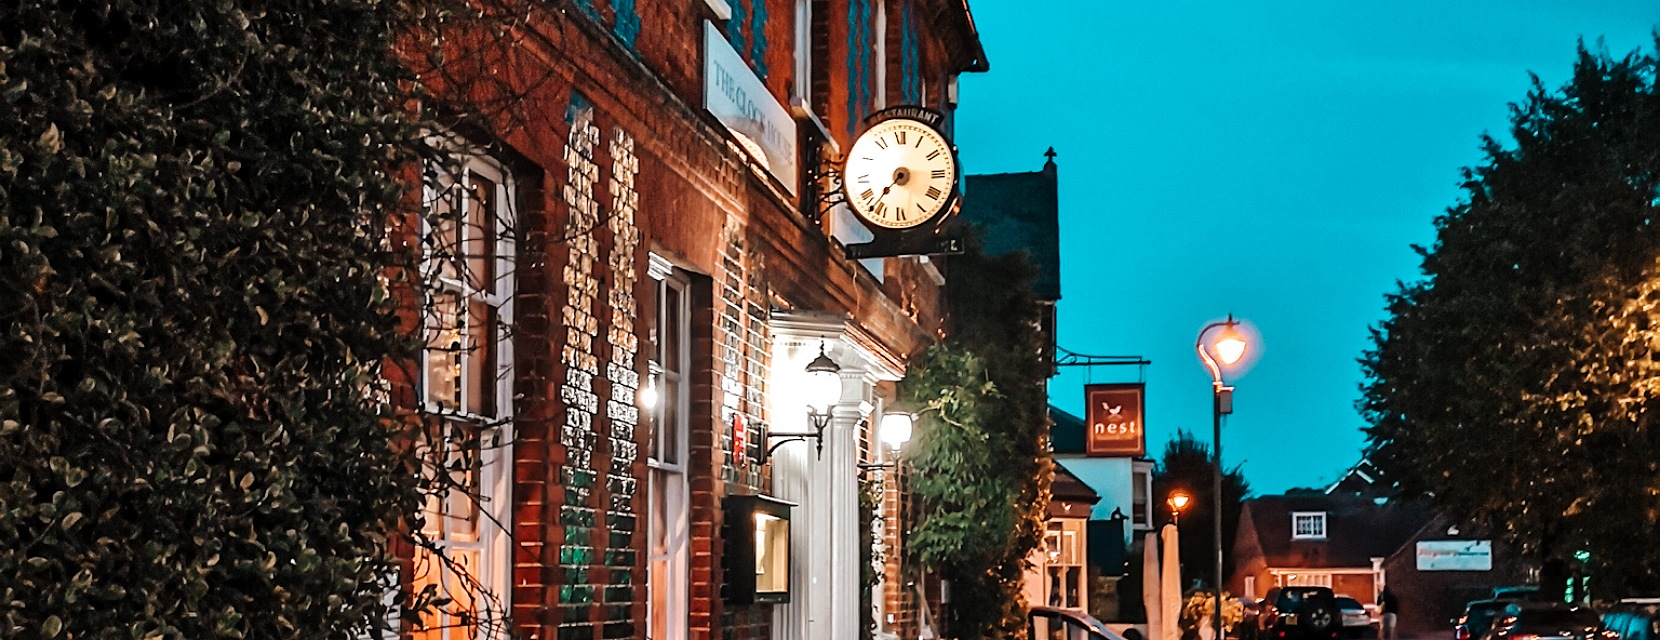 Restaurant recommendation: The Clock House, romantic fine dining in Surrey 46